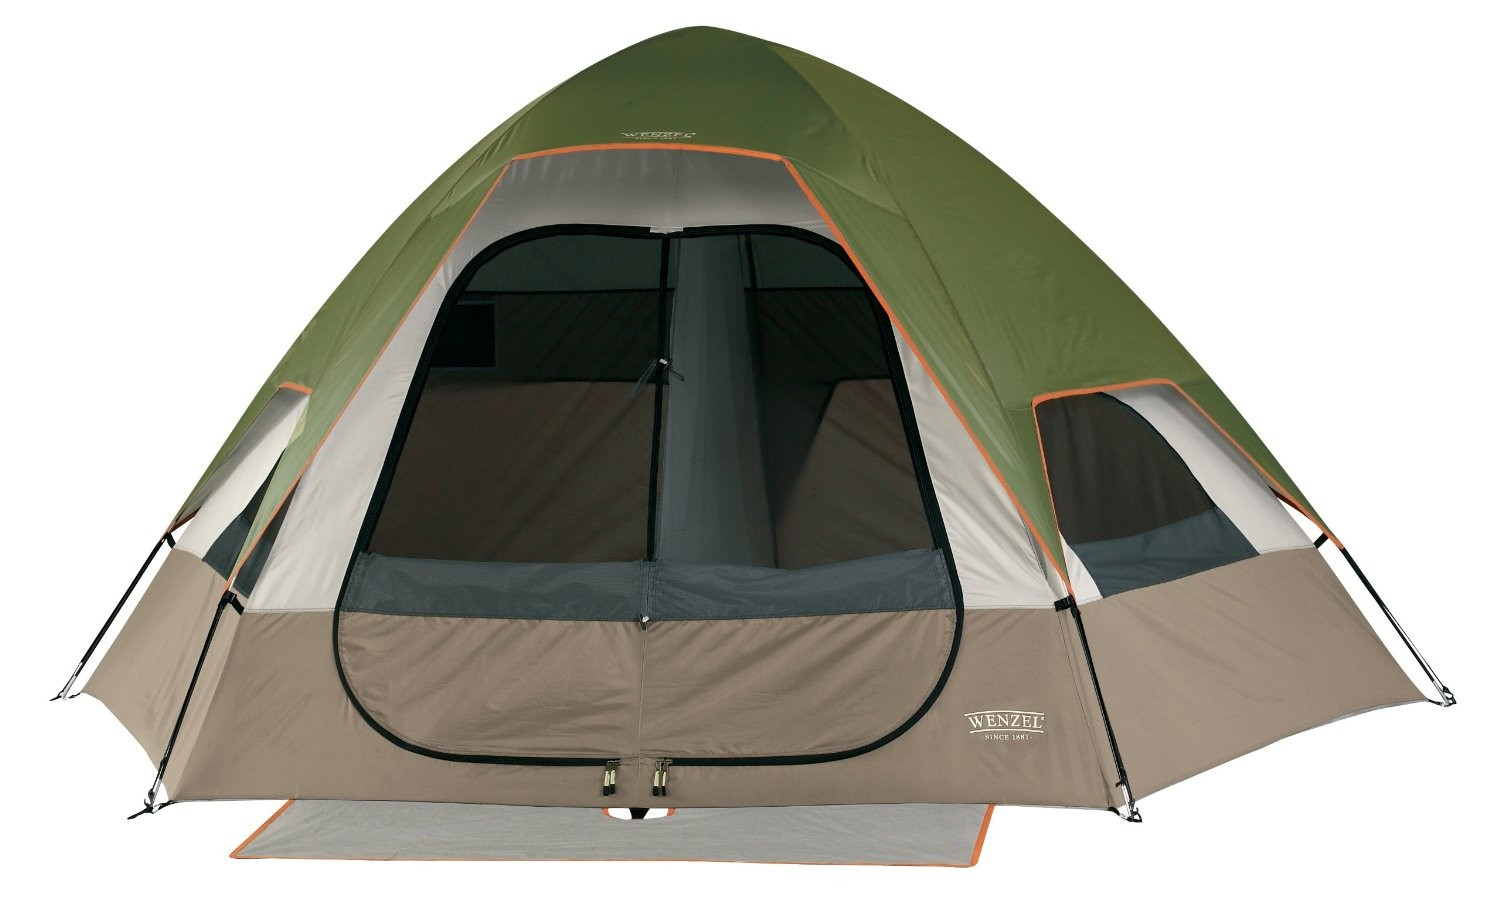 Big Bend 12-by-10 Foot 5-Person 2-Room Family Dome Tent